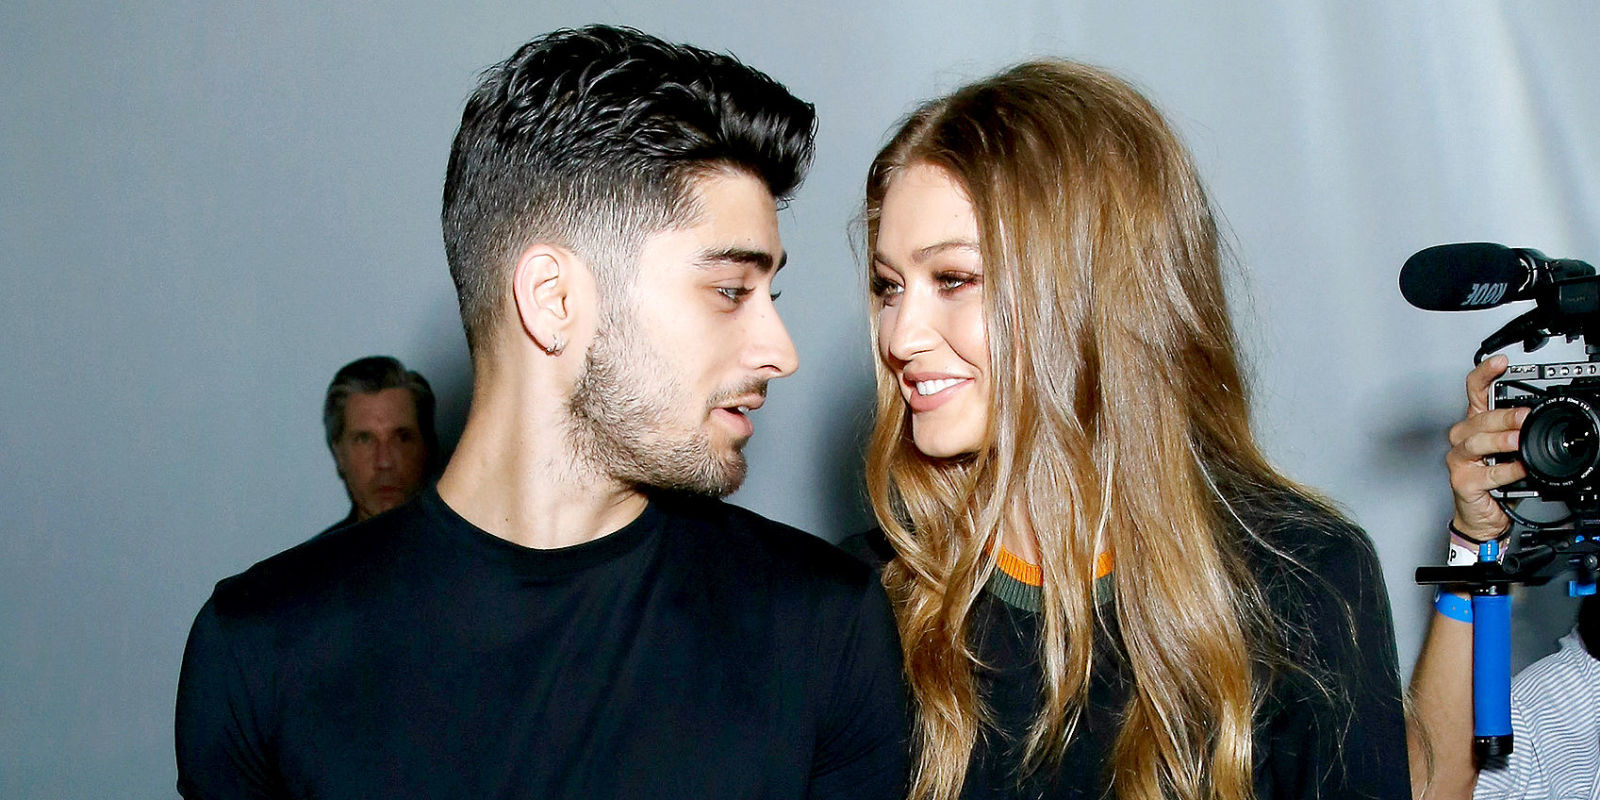 Gigi And Zayn Have Confirmed Their Break Up In Separate, Devastating Statements